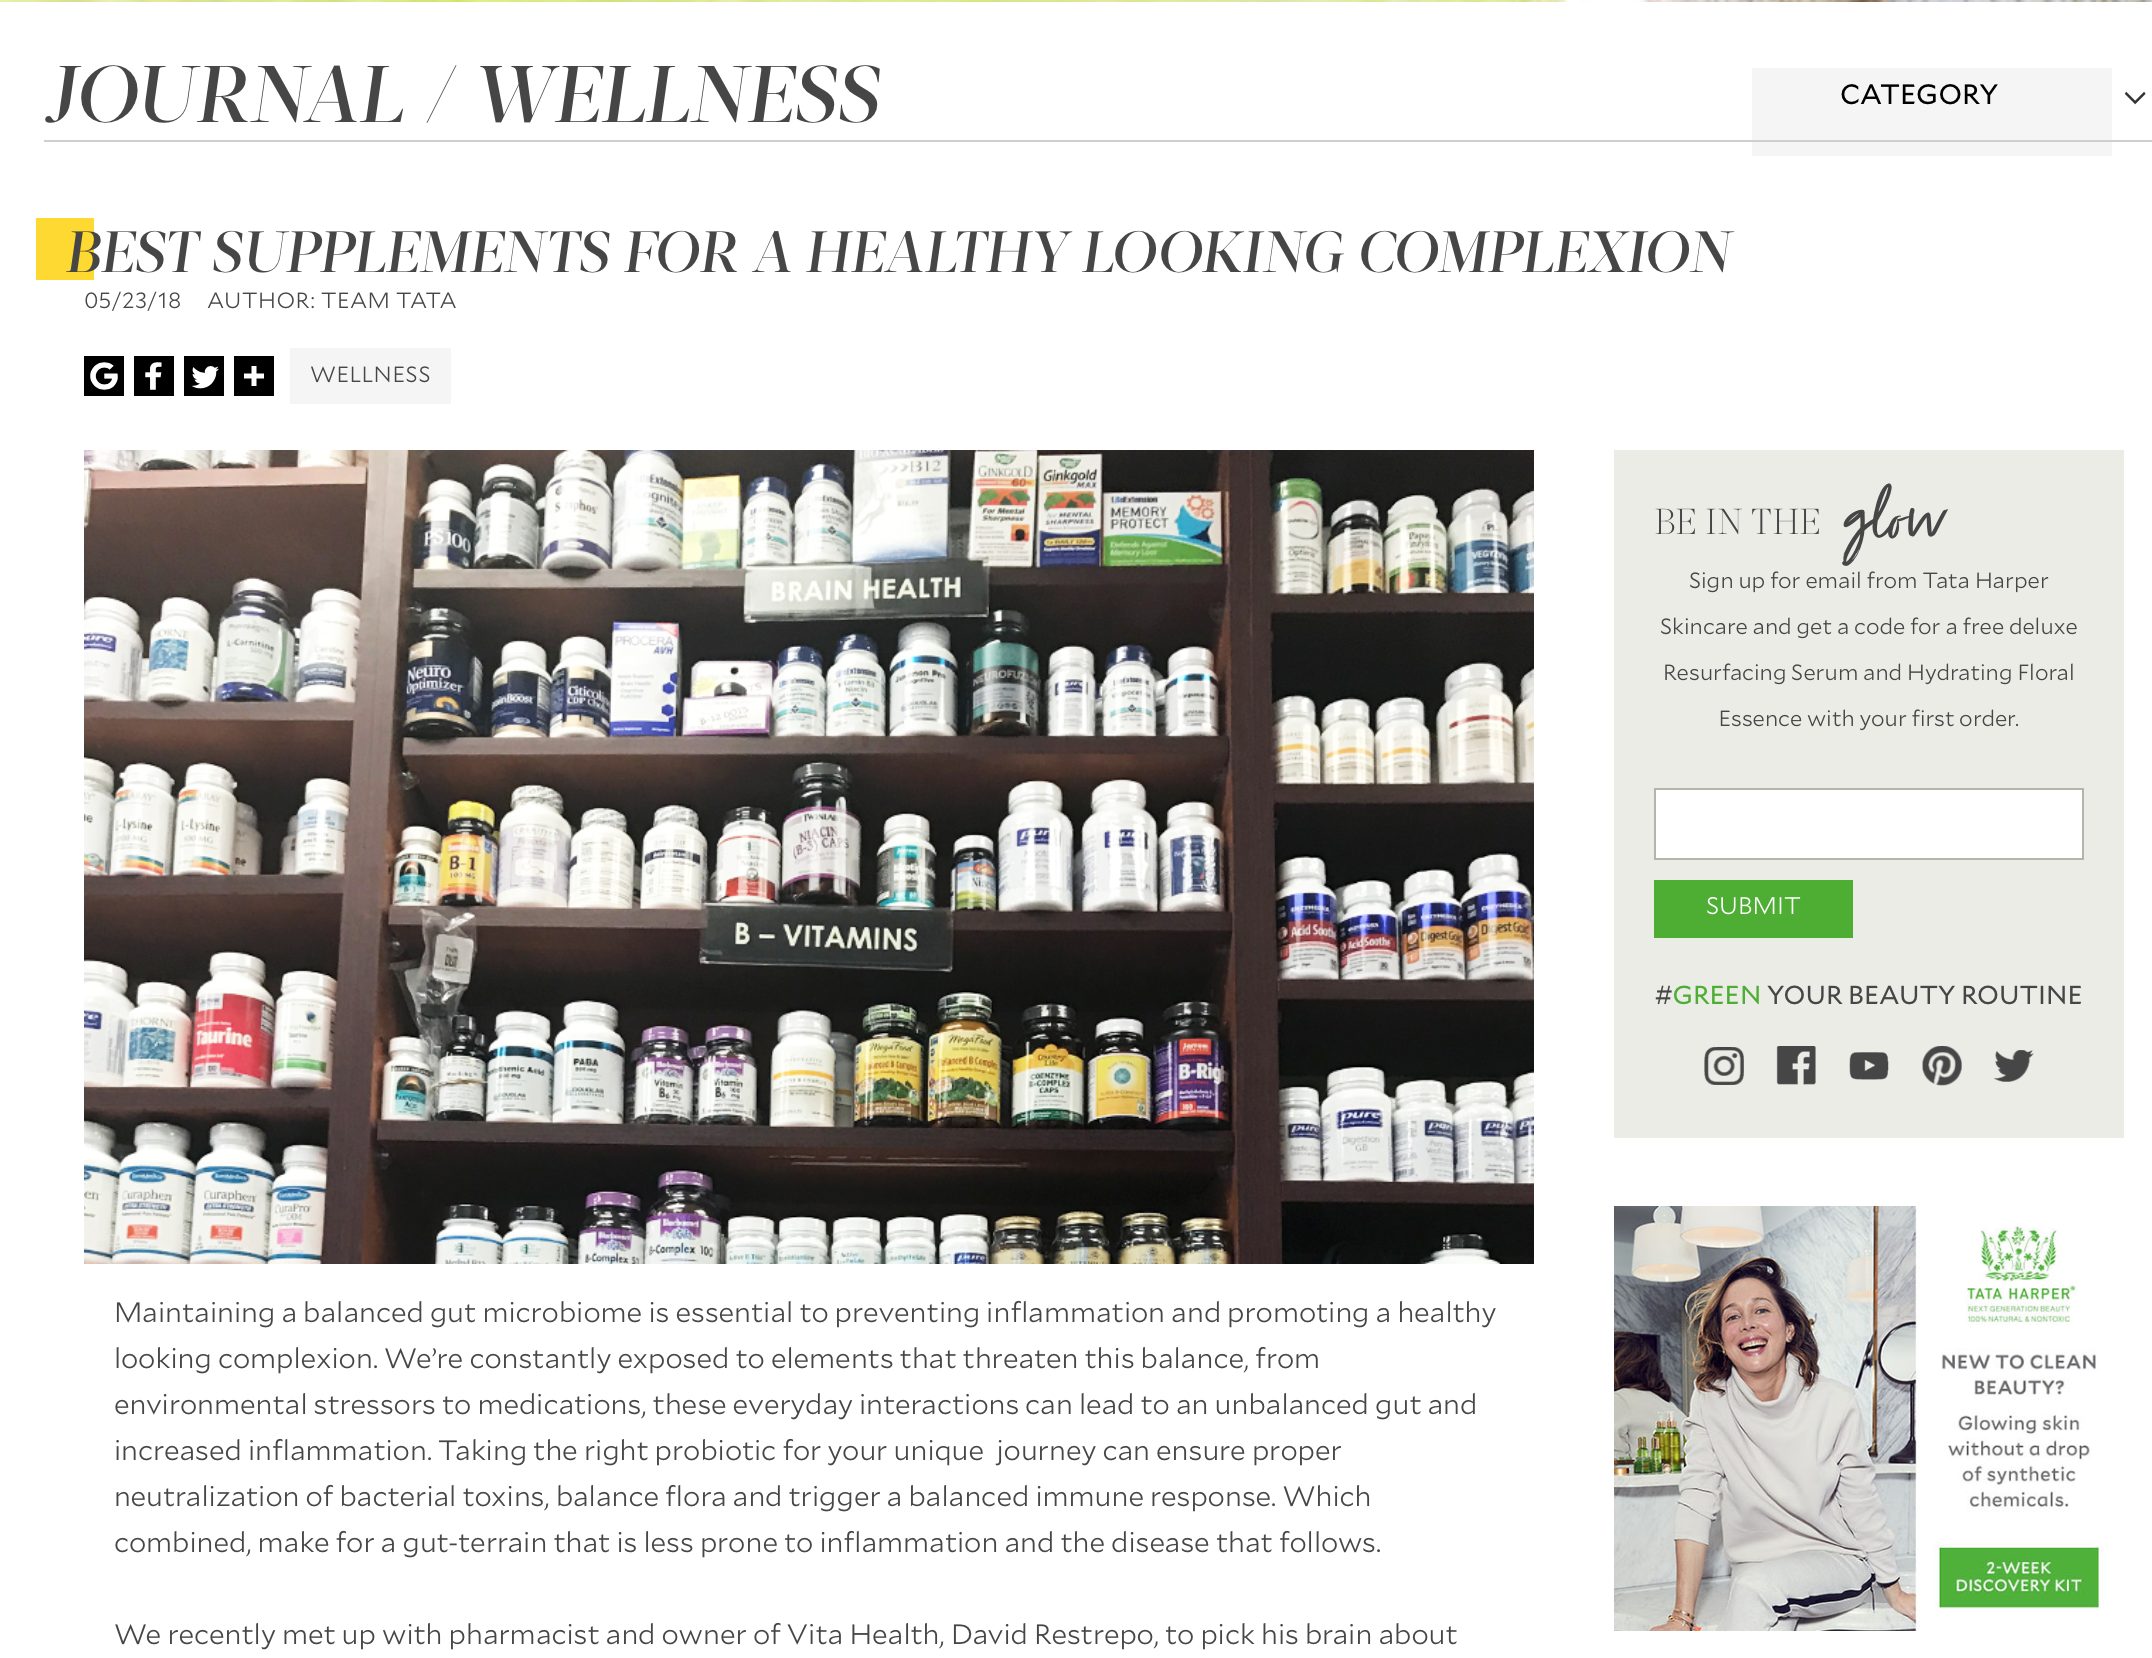 Read about supplements to know about for a healthy complexion